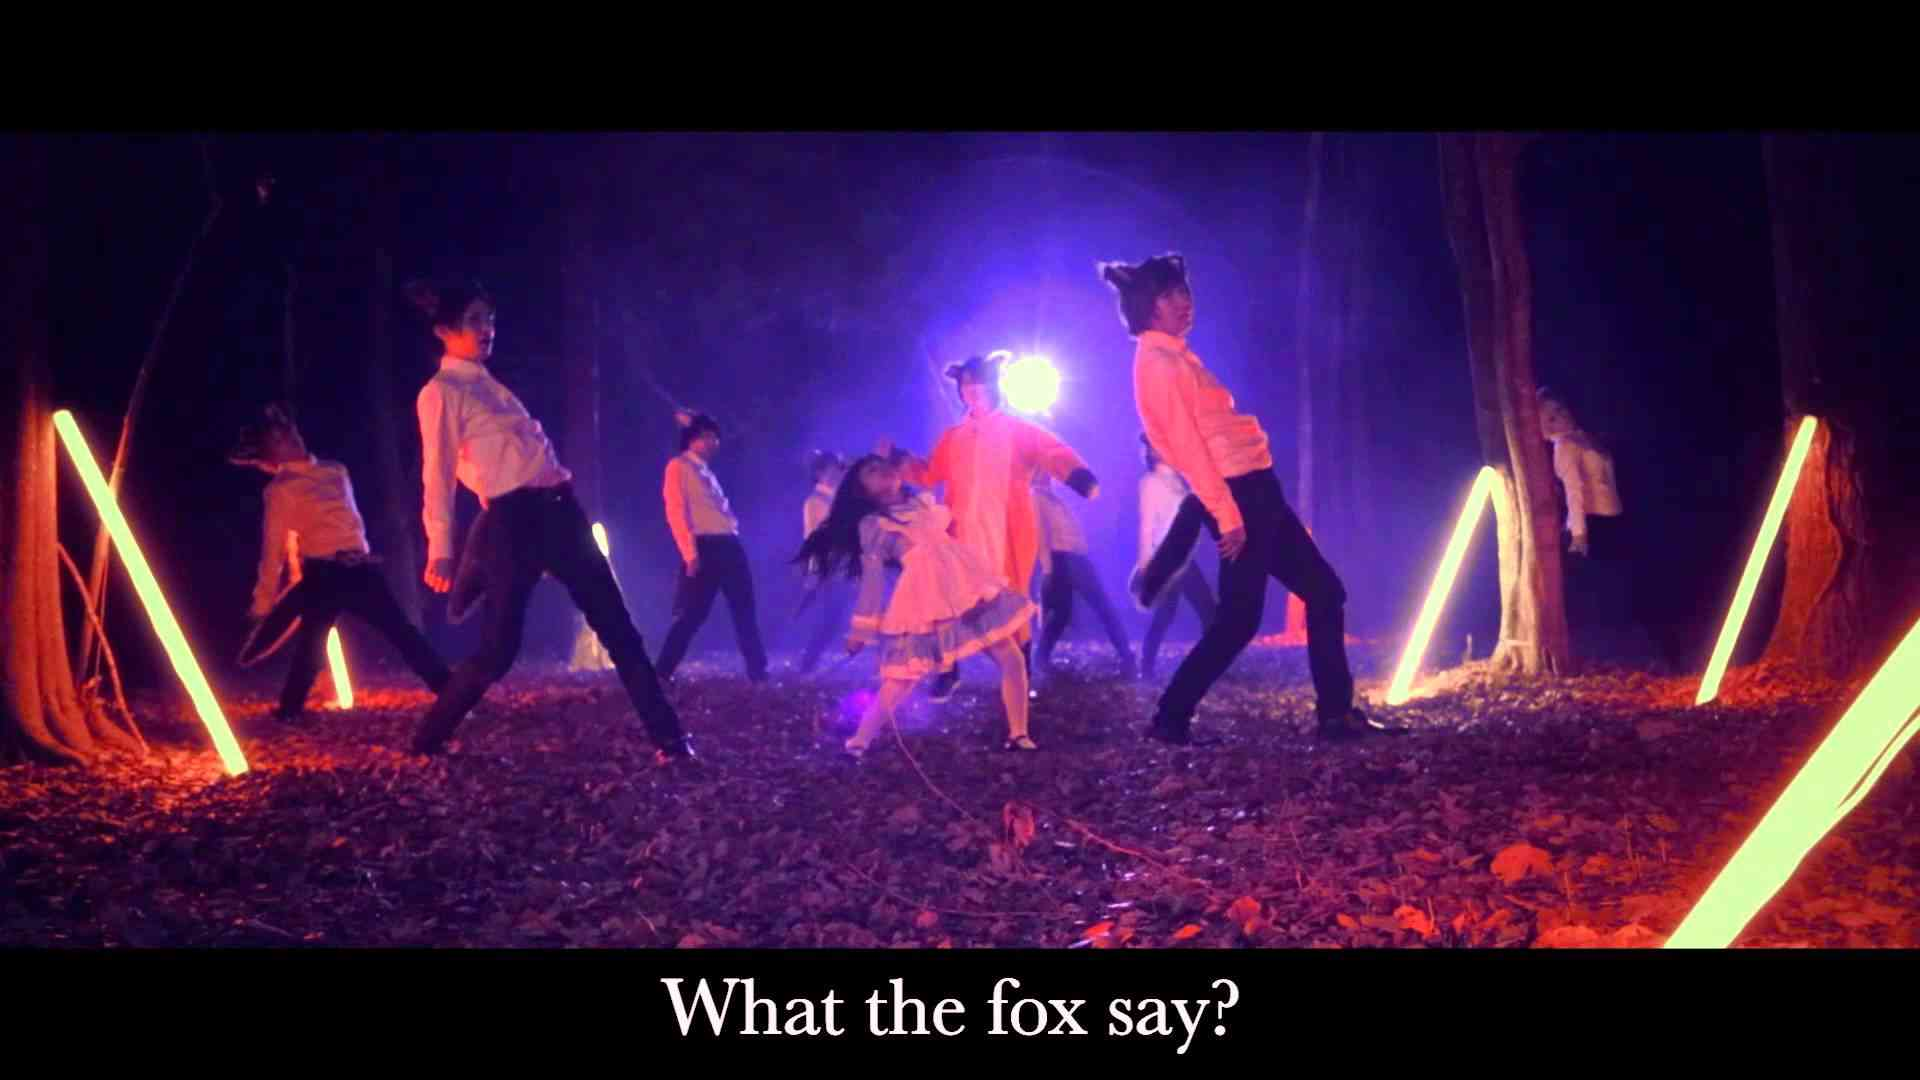 Ylvis - The Fox (What Does The Fox Say?)Cover from Japan - YouTube